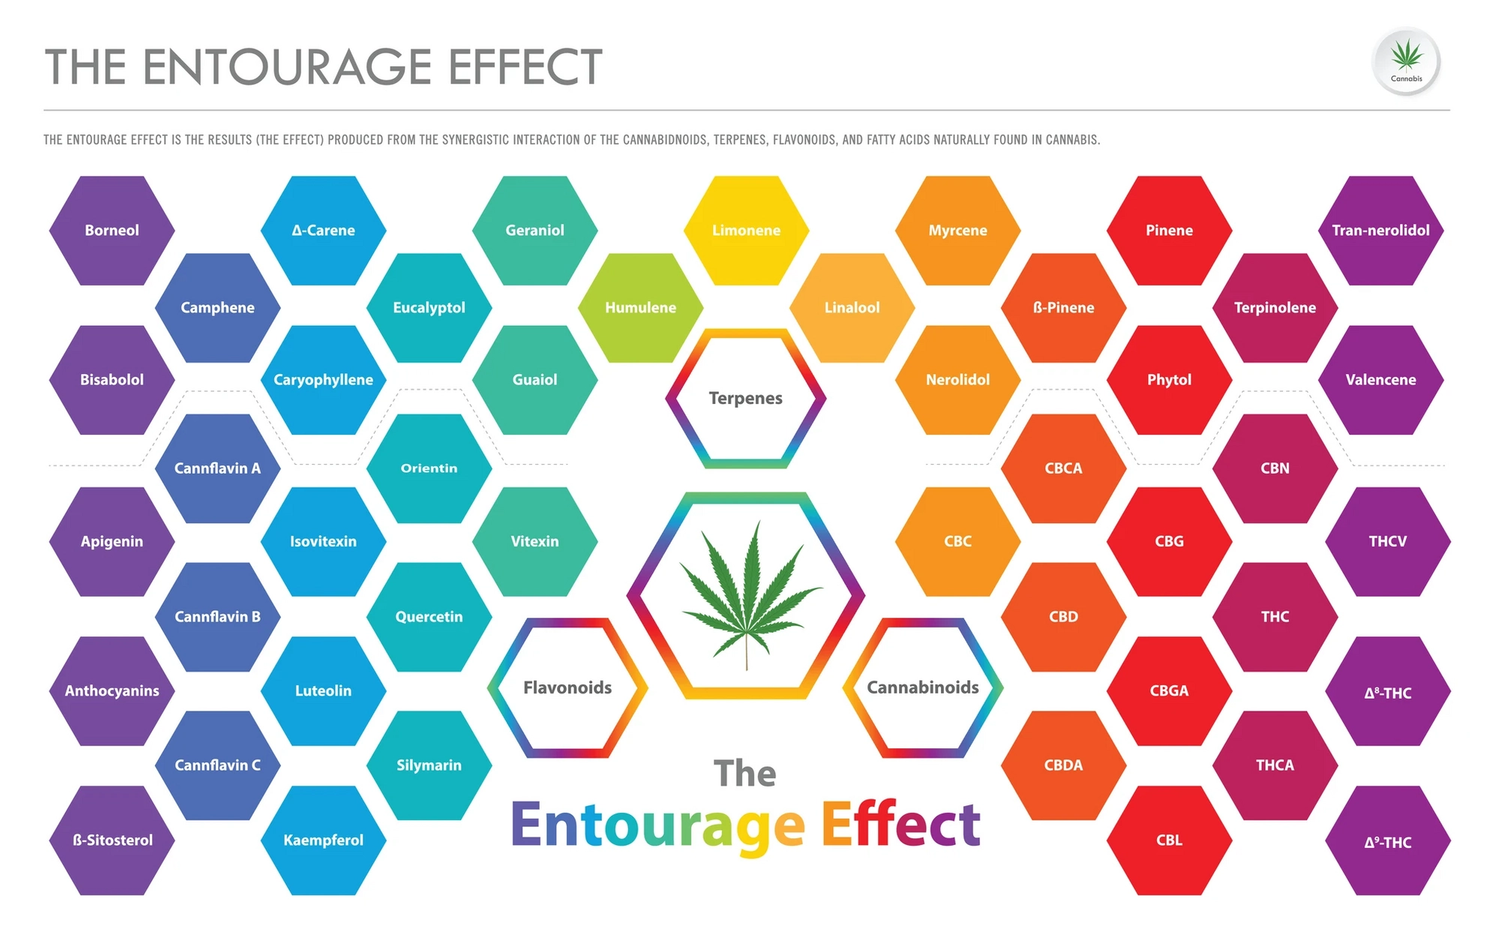 The Entourage Effect; How Does It Work?